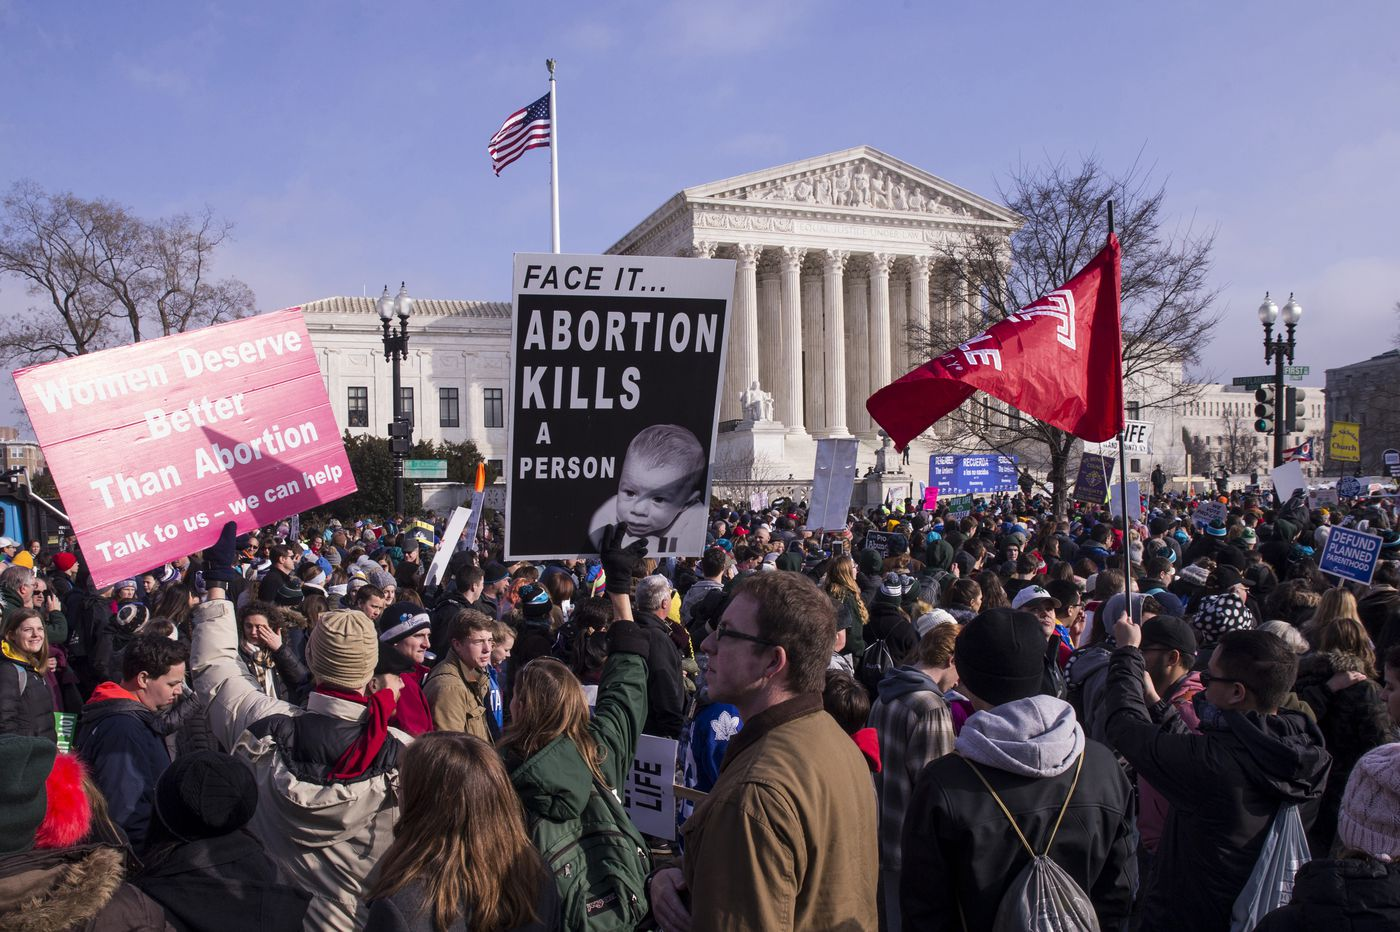 The movie abortion supporters don't want you to see | Marc Thiessen